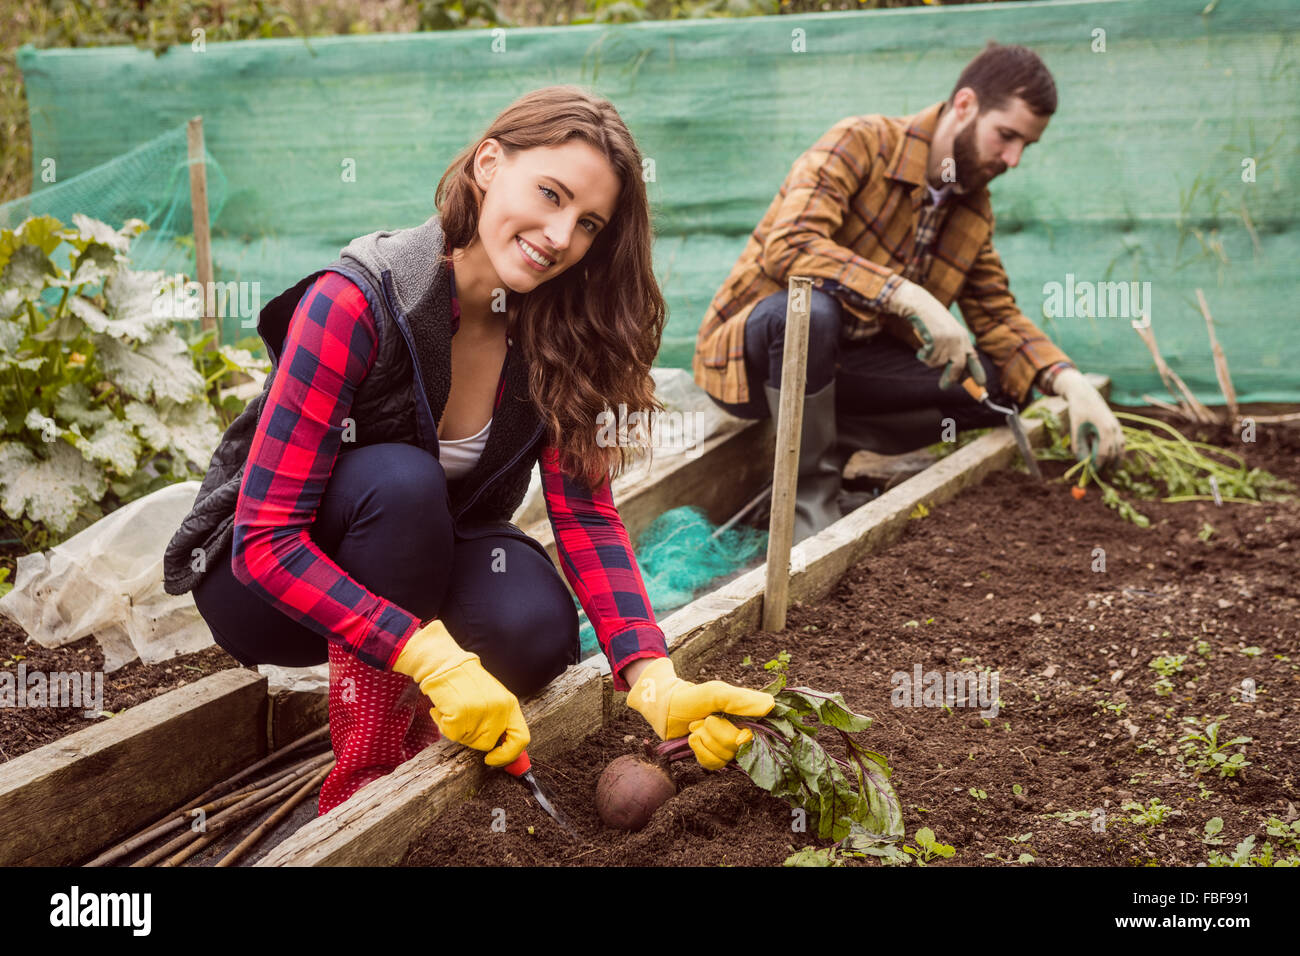 Happy couple harvesting together - Stock Image